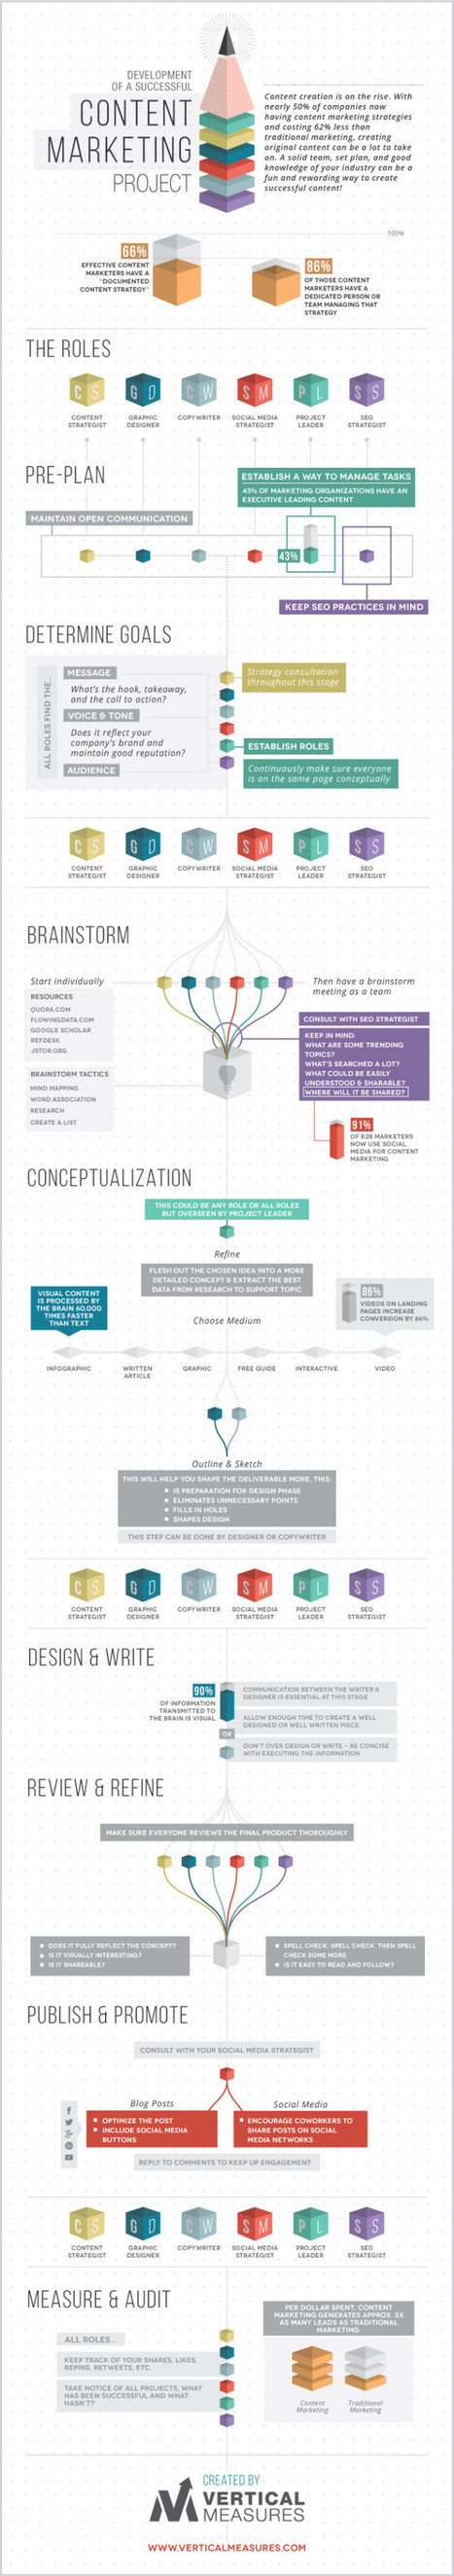 The 8 Step Approach to Successful Content Marketing #infographic | digital strategy | Scoop.it